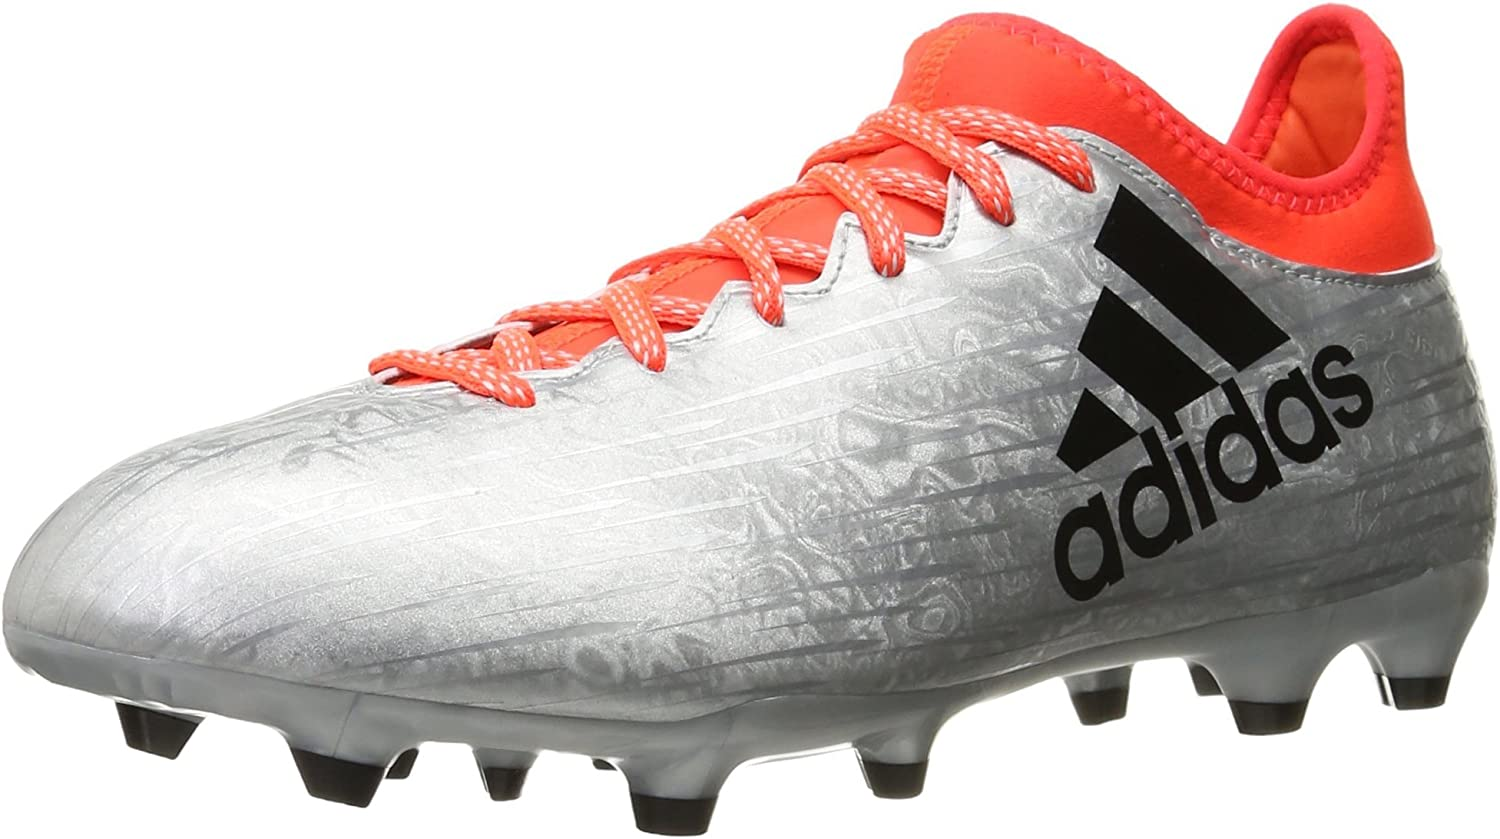 Adidas Performance Men's X 16.3 Fg Soccer shoes